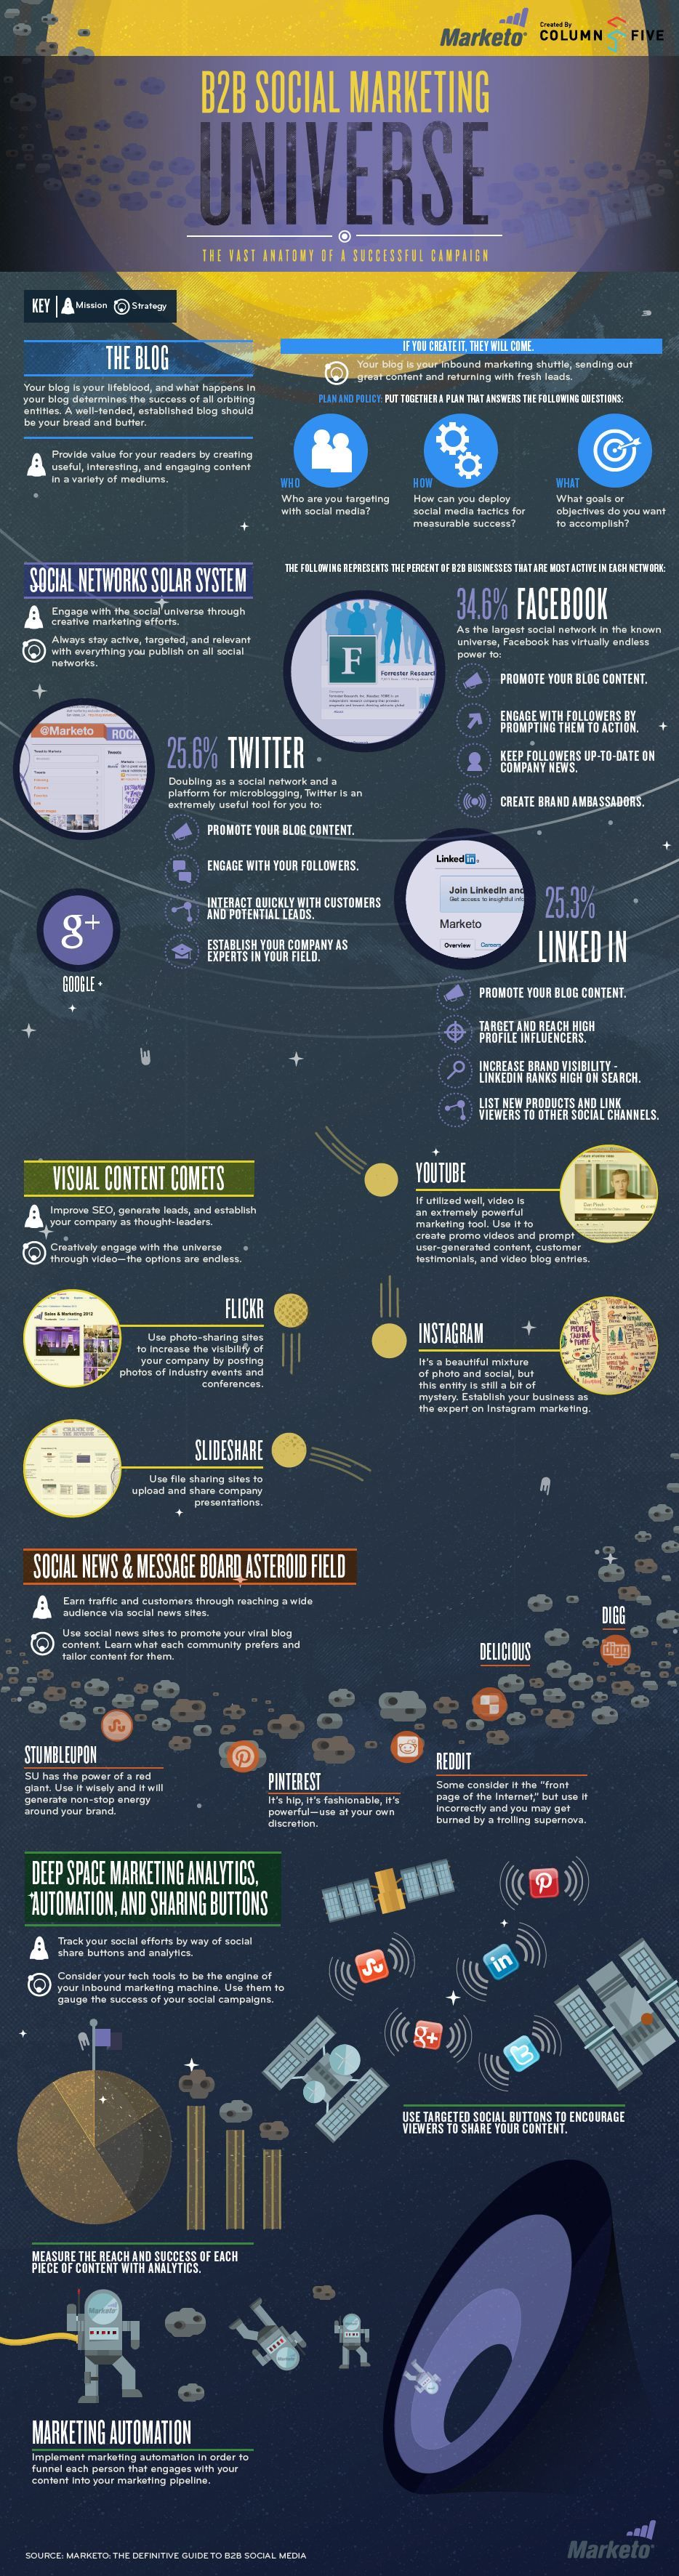 The Key Planets of the Social Media Universe